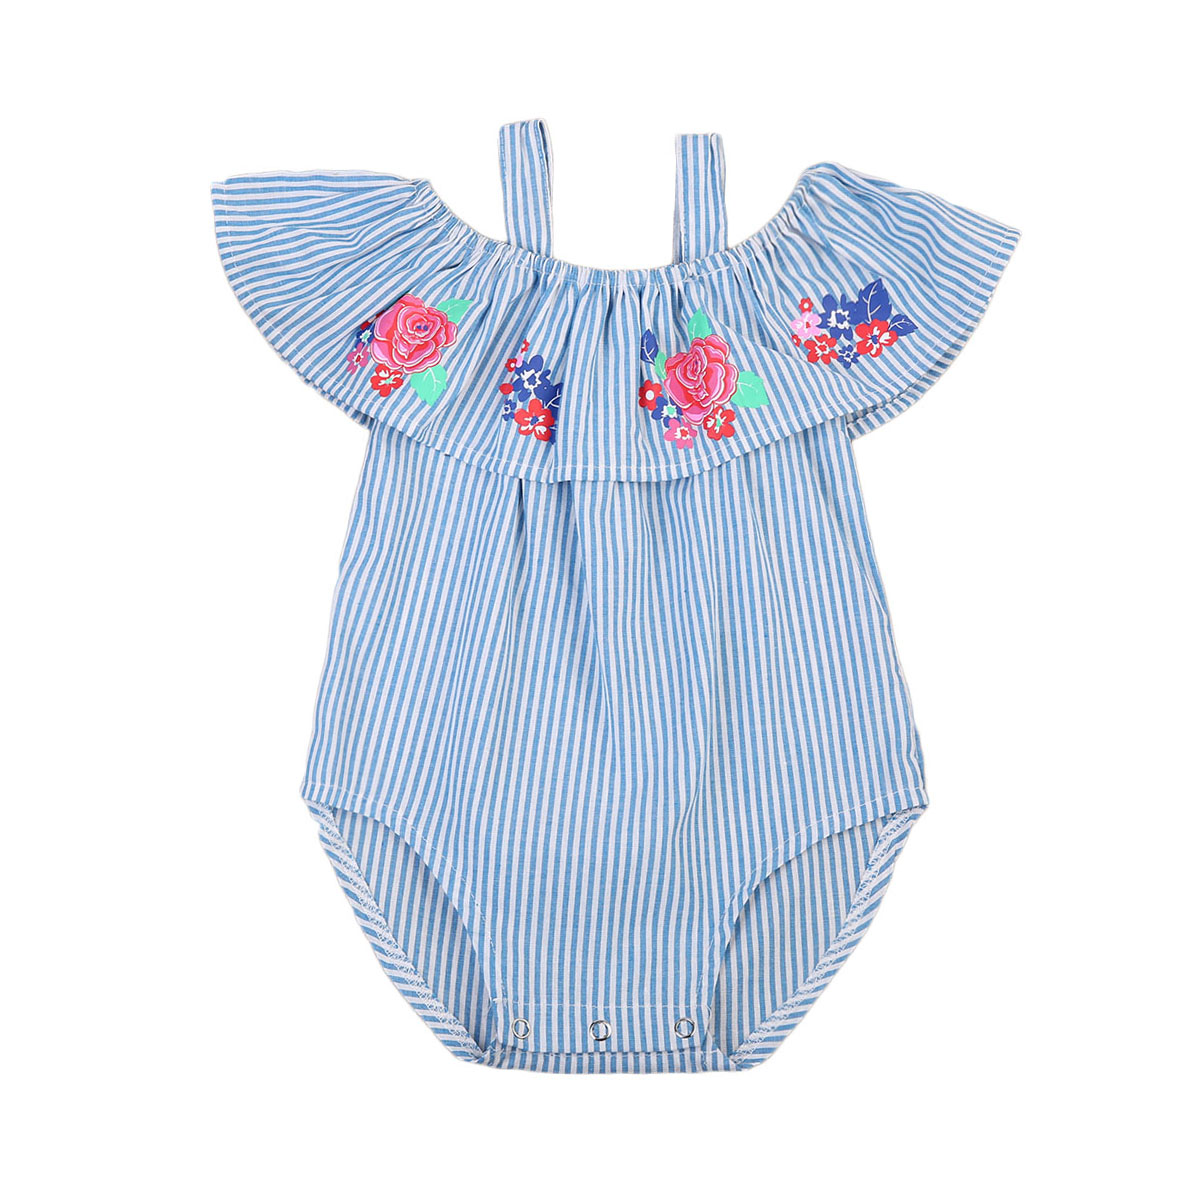 Newborn Baby Girls Clothes Roses Blue Striped Cotton Romper Jumpsuit Outfit Sunsuit Clothes Baby Girl Clothing(China (Mainland))